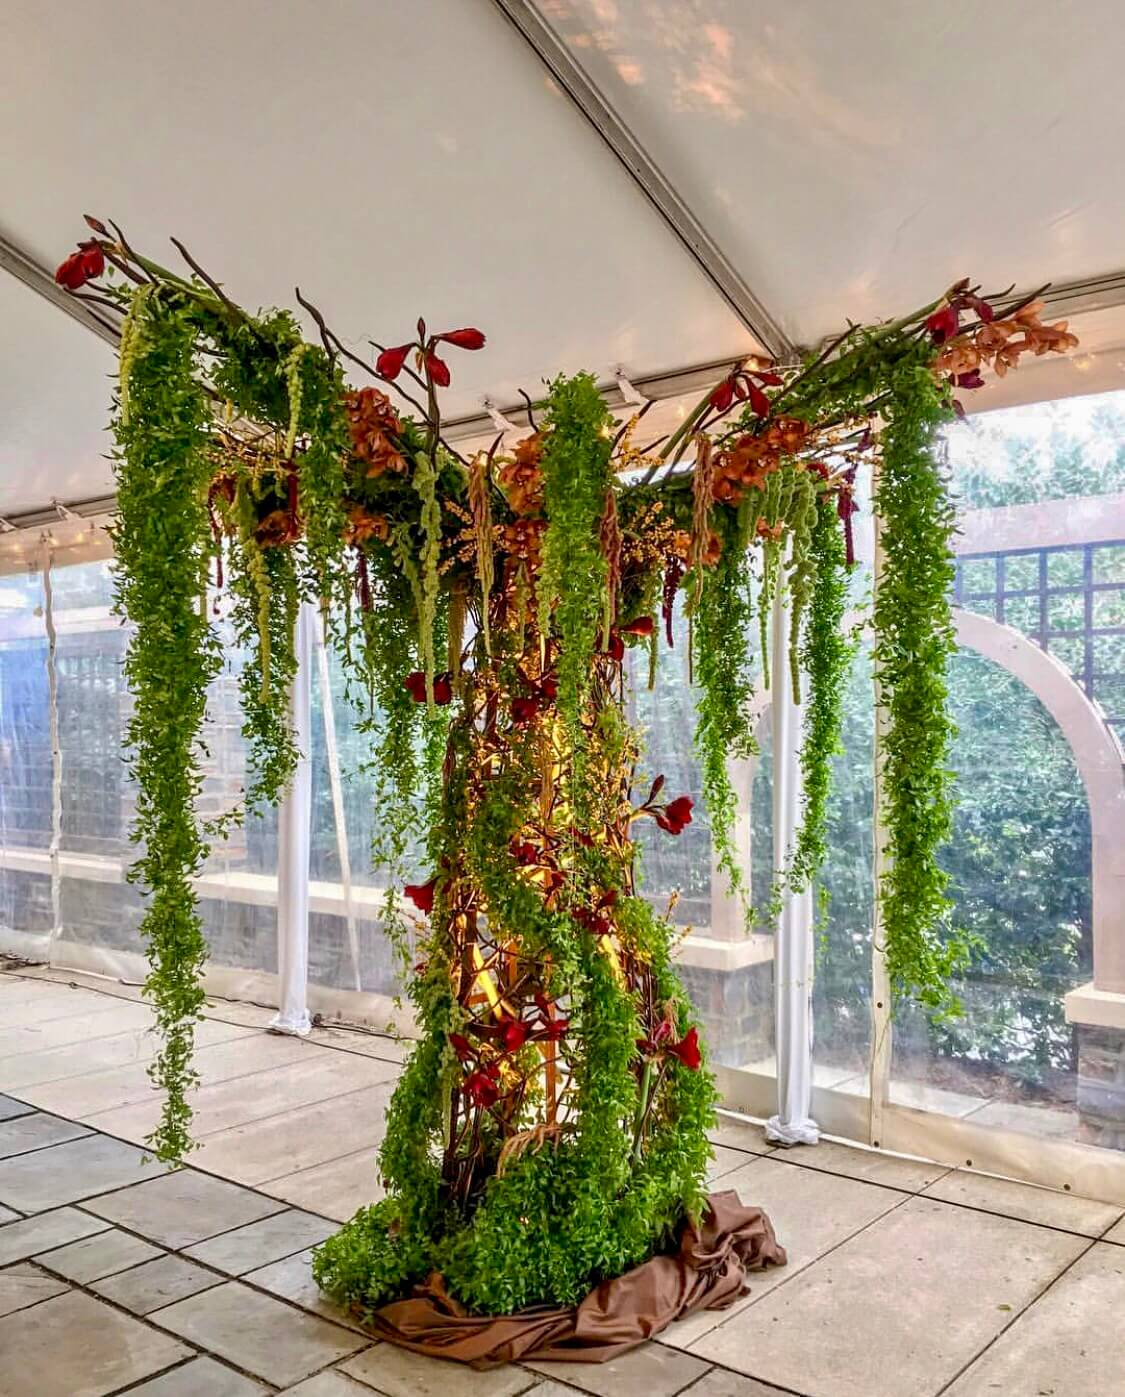 Whimsical tree floral installation